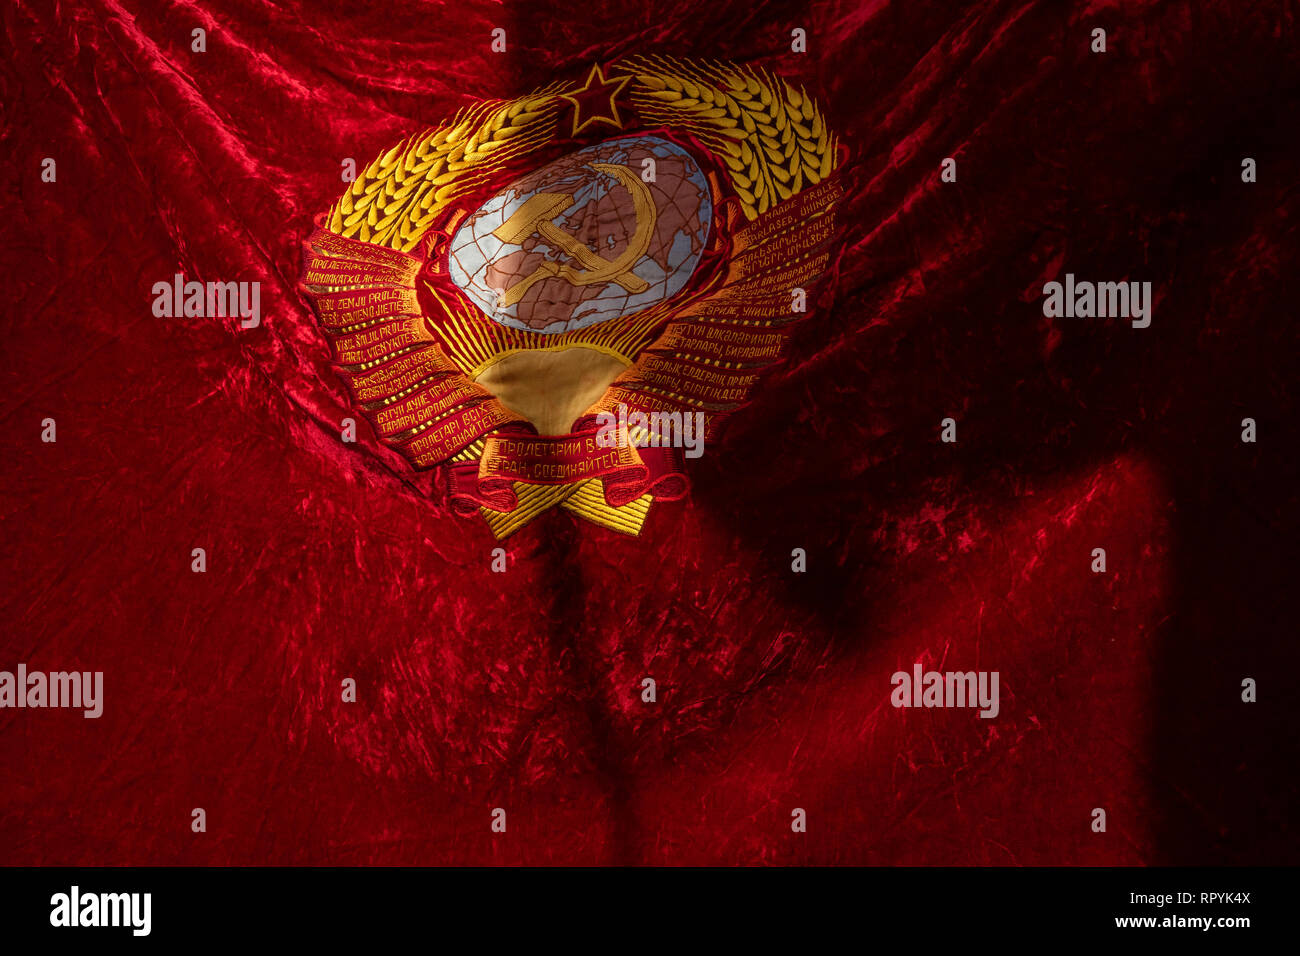 Moscow, Russia. 23 February, 2019: Banner with the emblem of the USSR in a march of the Russian Communist Party in central Moscow to mark the 101st anniversary of establishment of the Red Army and the Navy on Defender of the Fatherland Day Credit: Nikolay Vinokurov/Alamy Live News - Stock Image